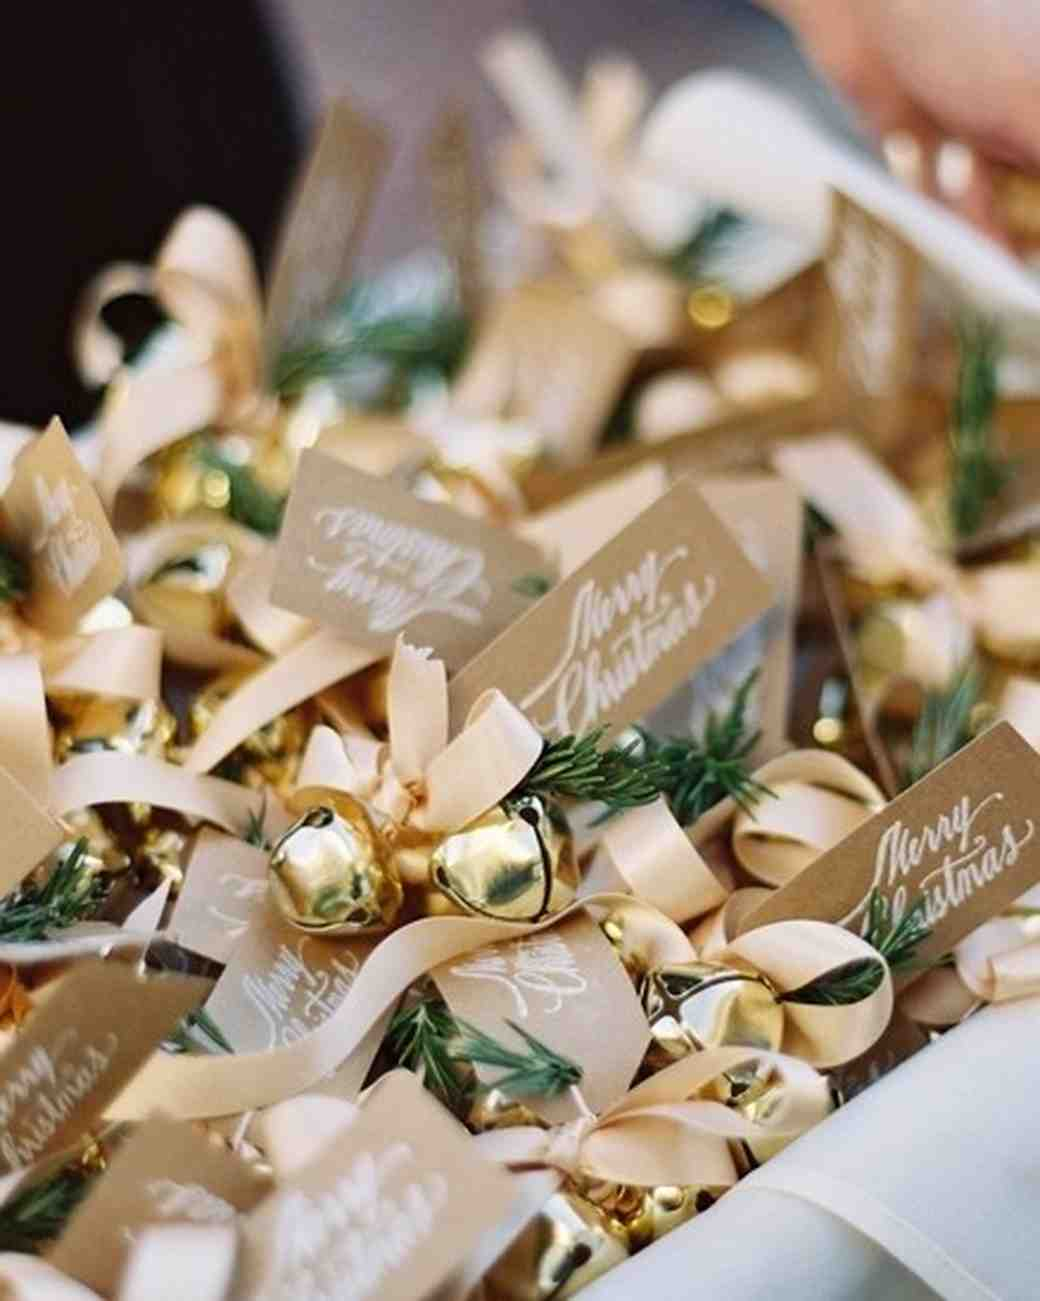 Choose a seasonal gift for guests to take home after a winter wedding with these favor ideas